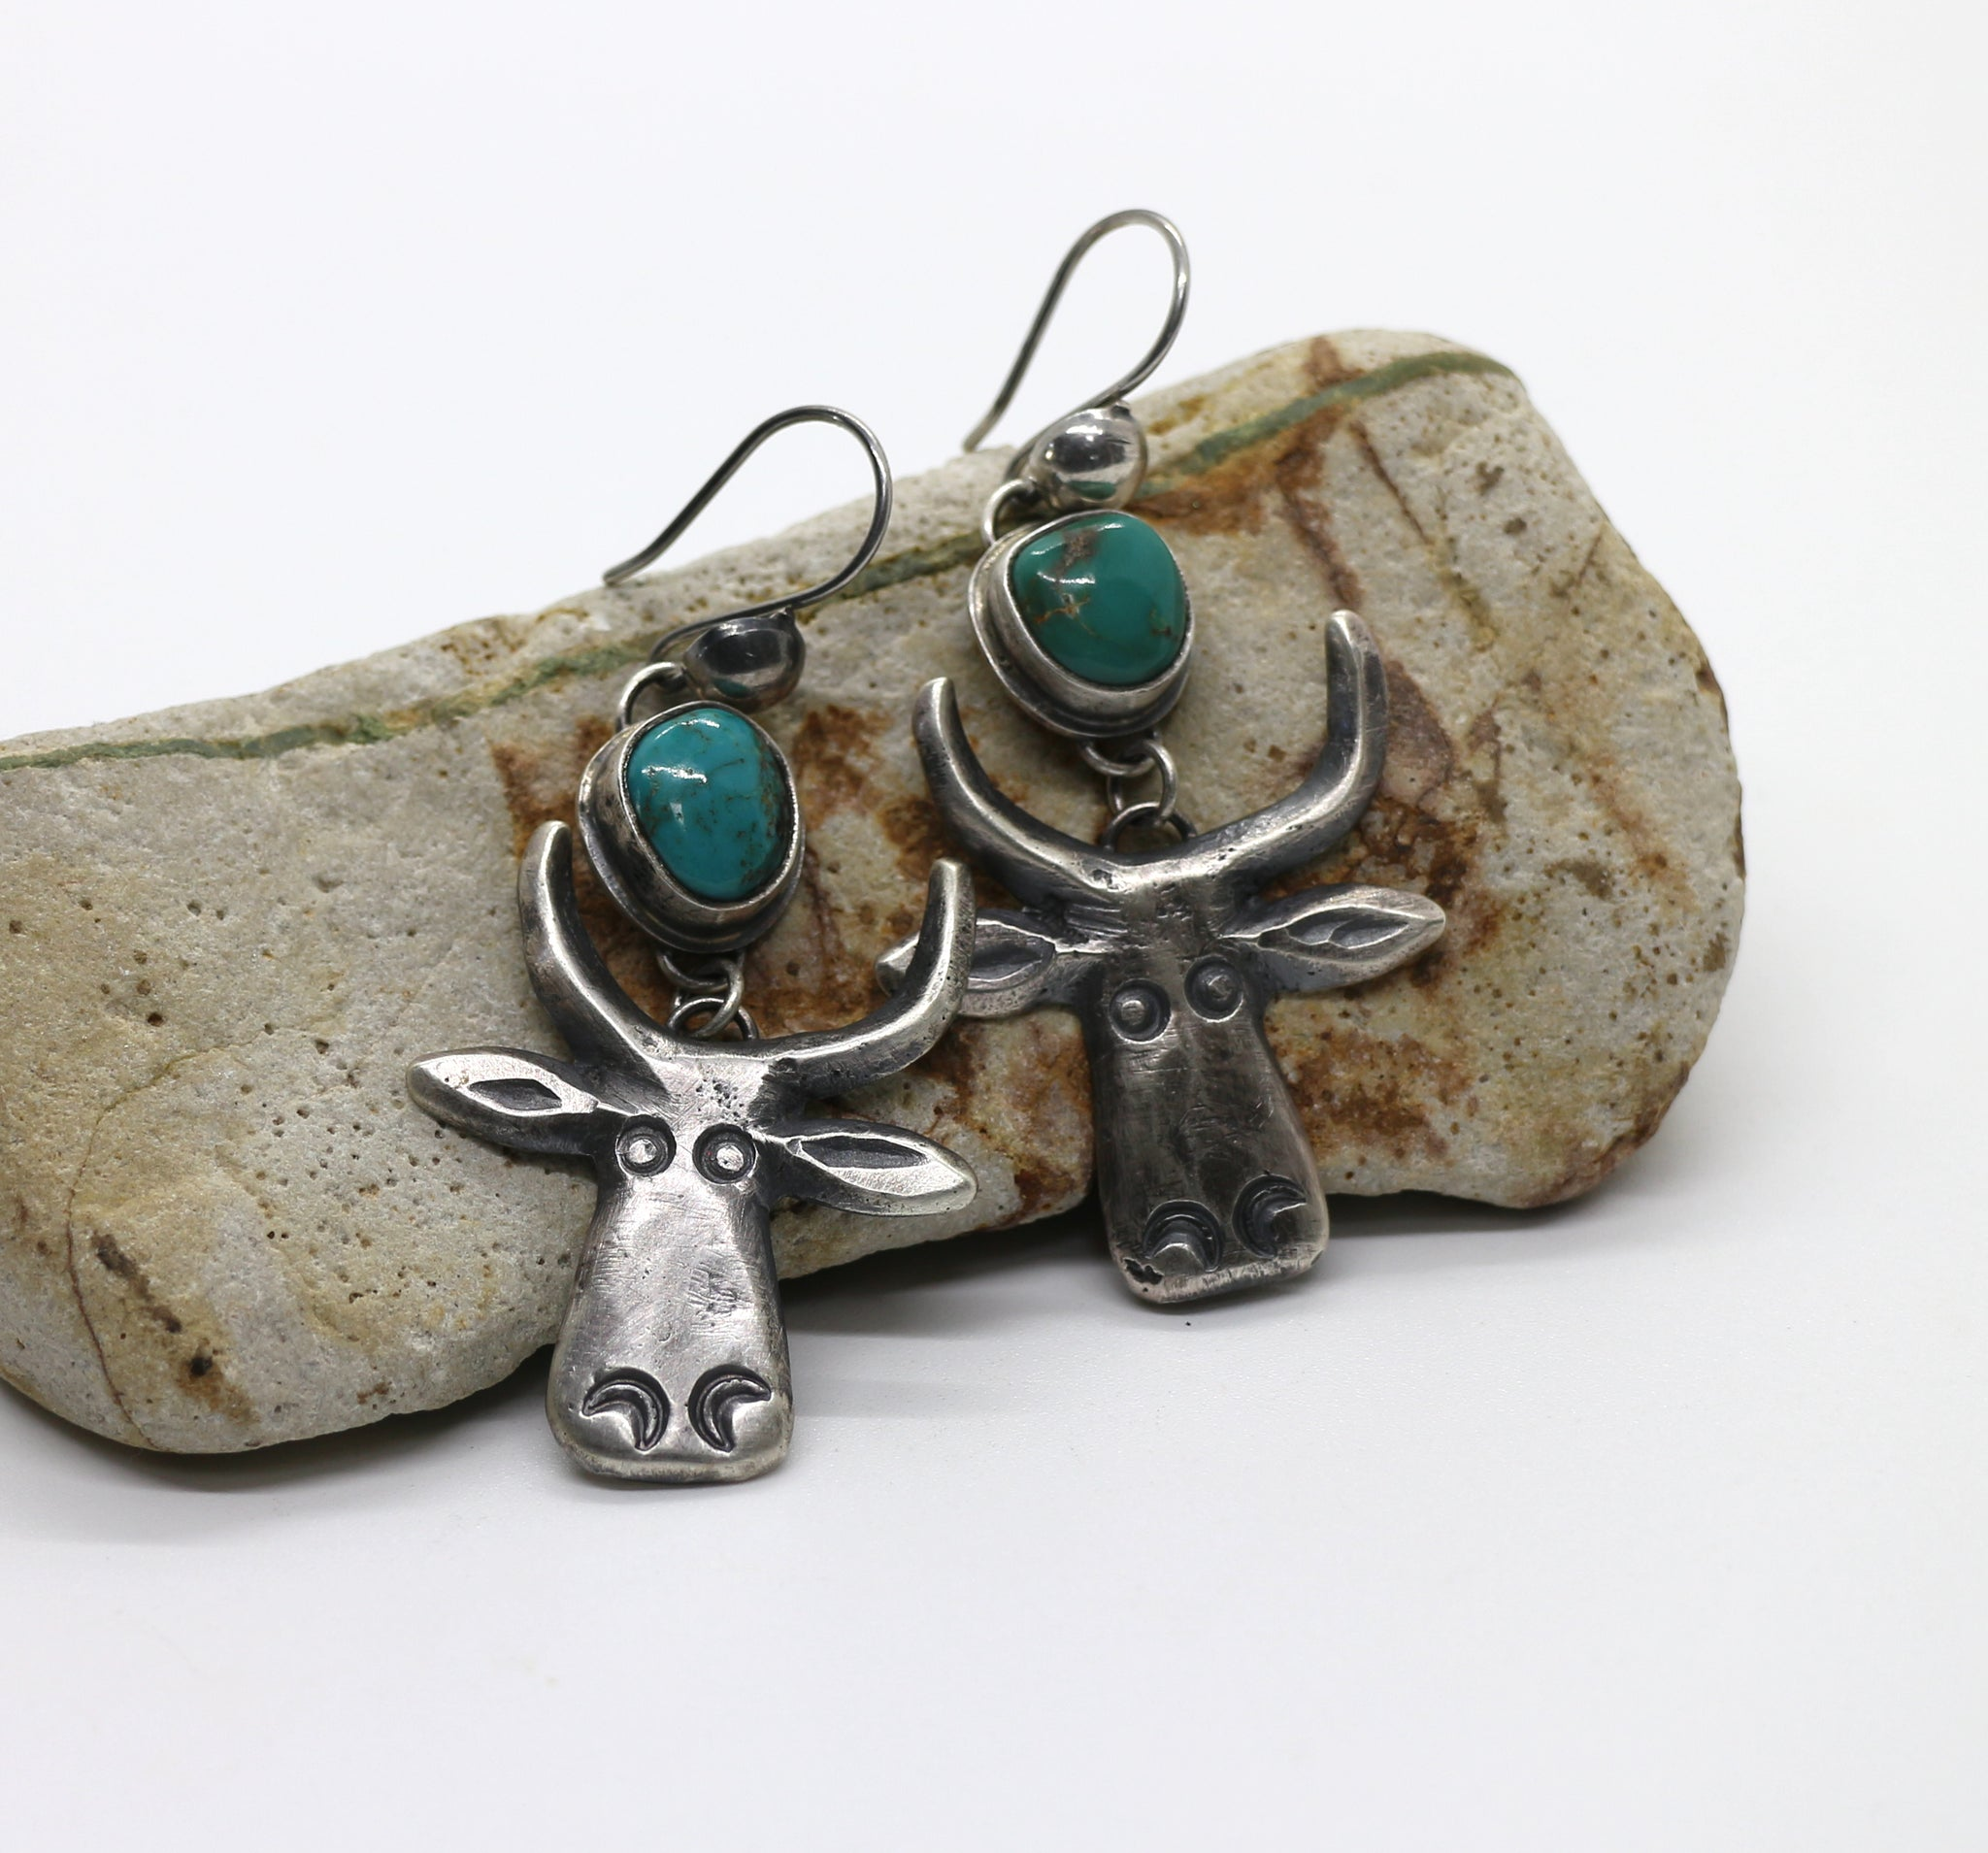 Jesse Robbins Cow Earrings with Cheyenne Turquoise